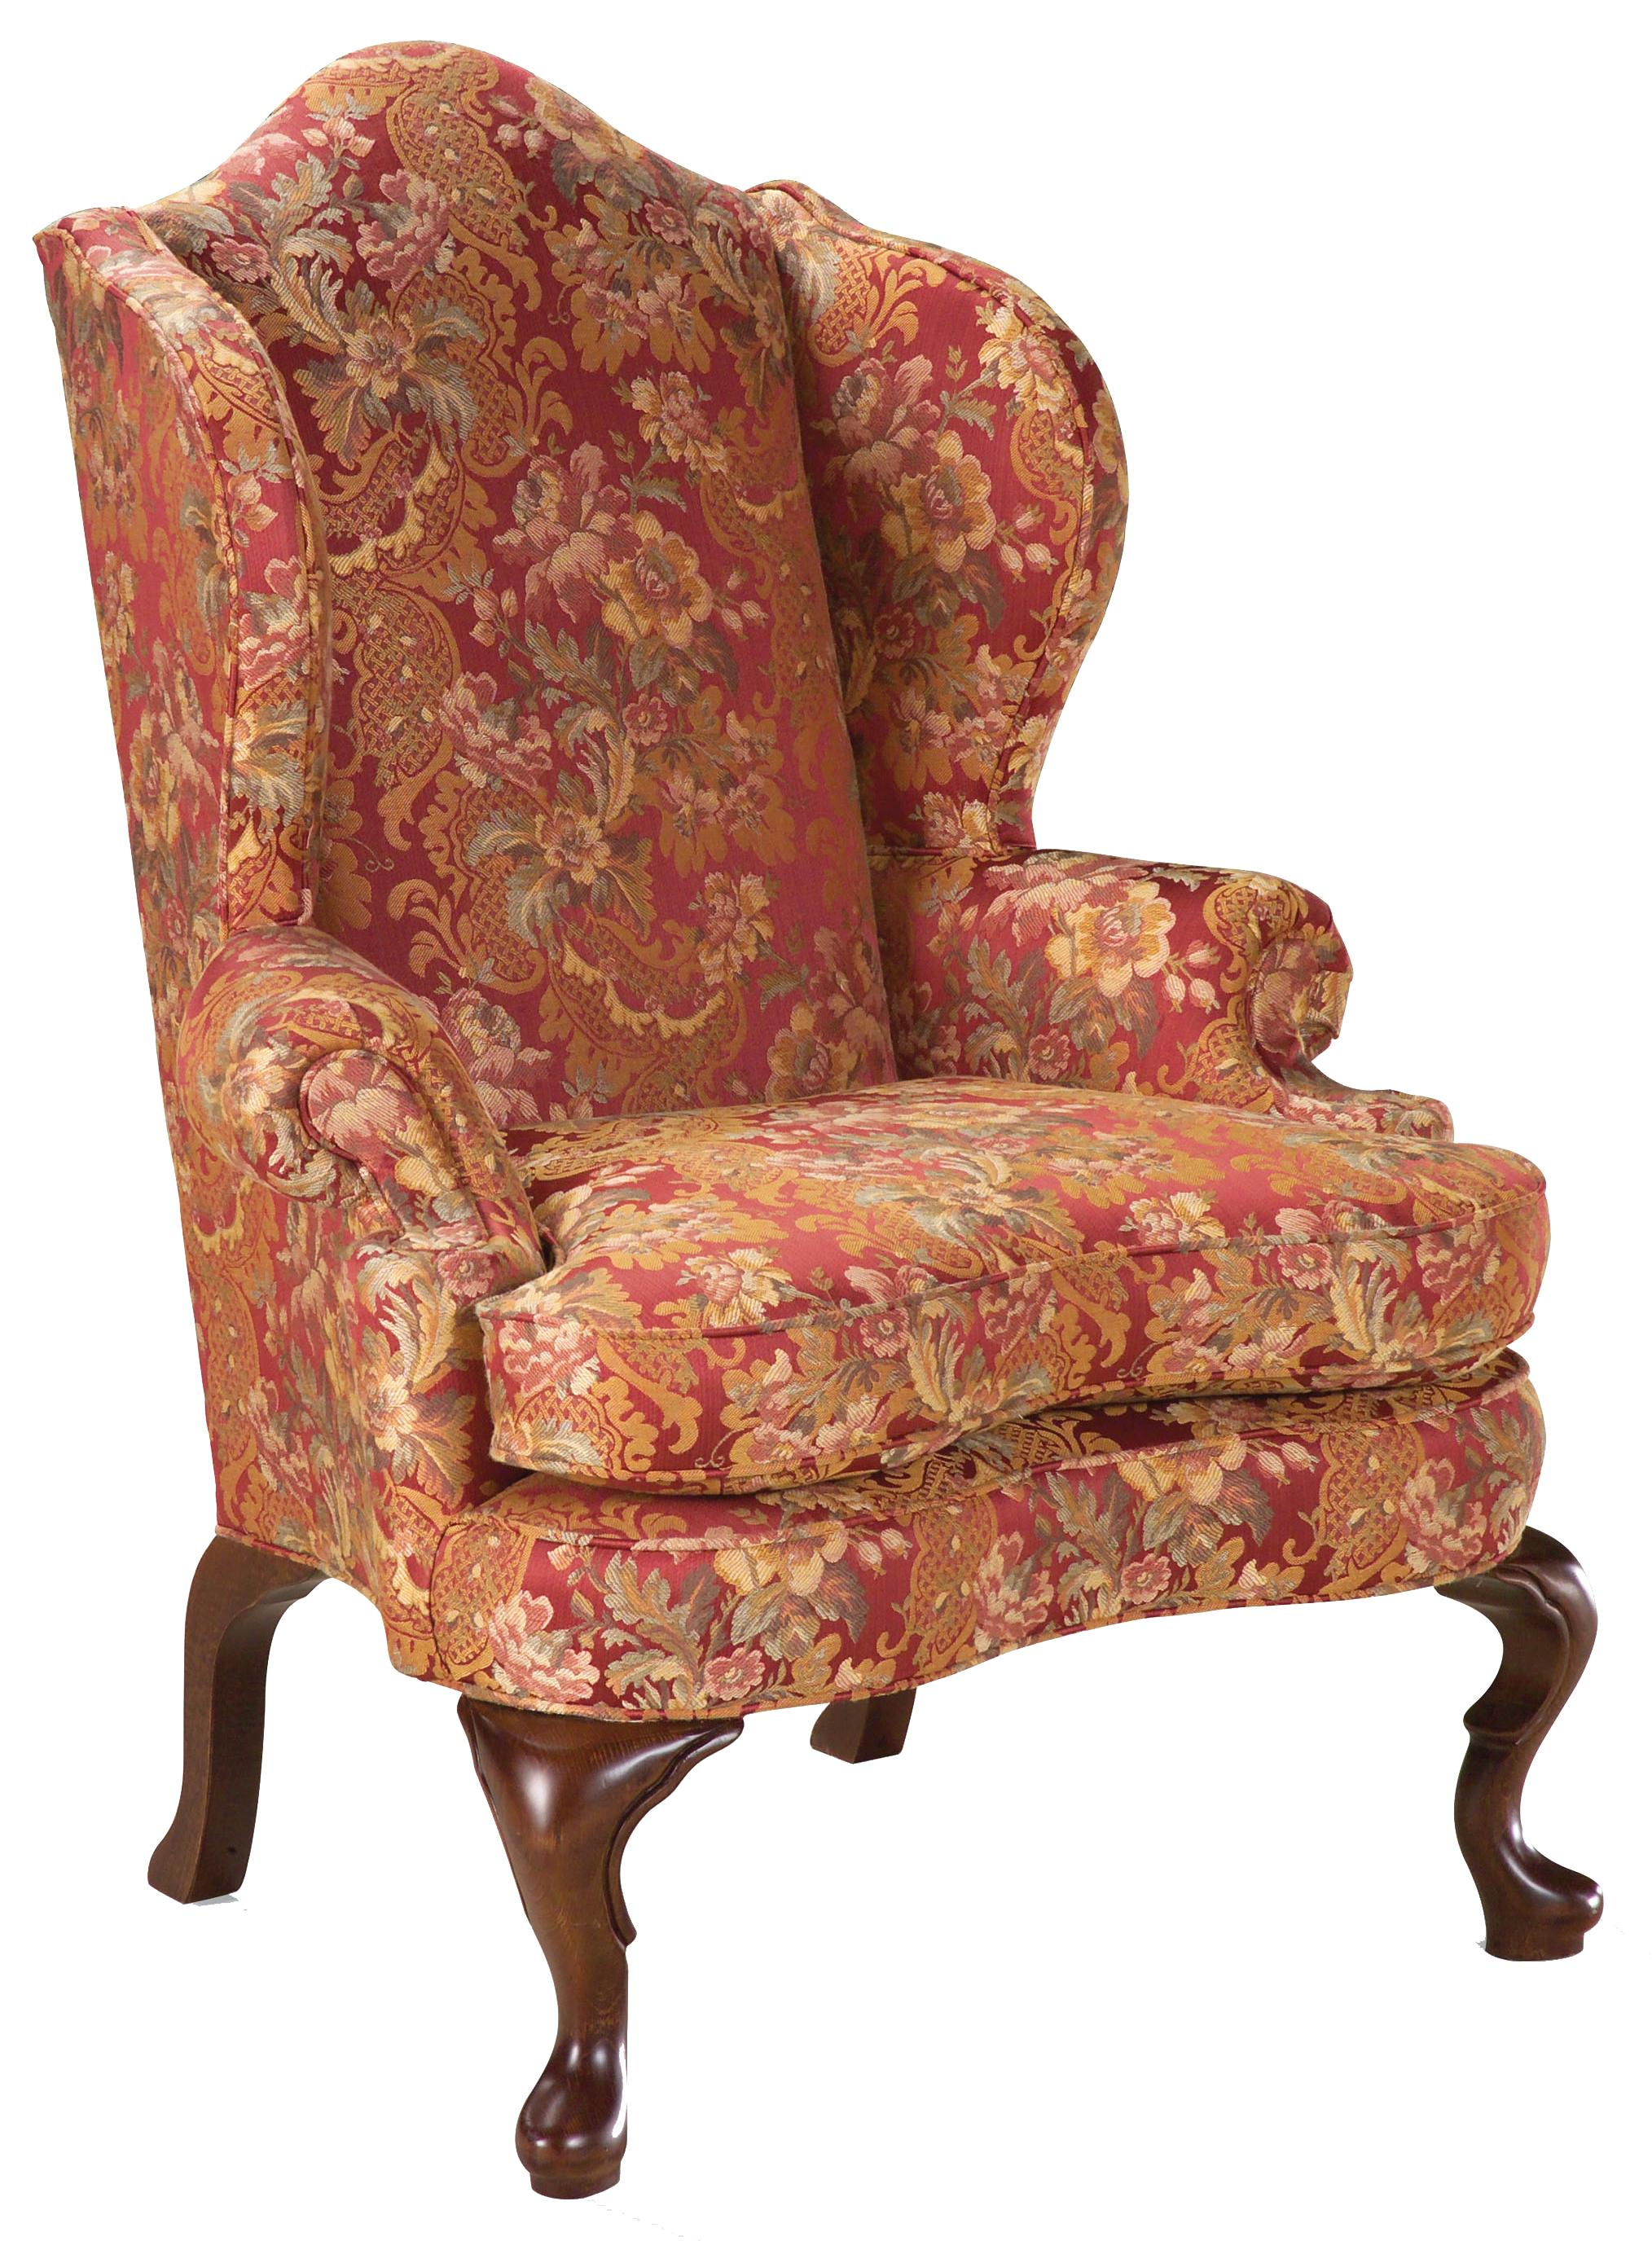 Fairfield Chairs High Back Wing Chair - Item Number: 5352-01